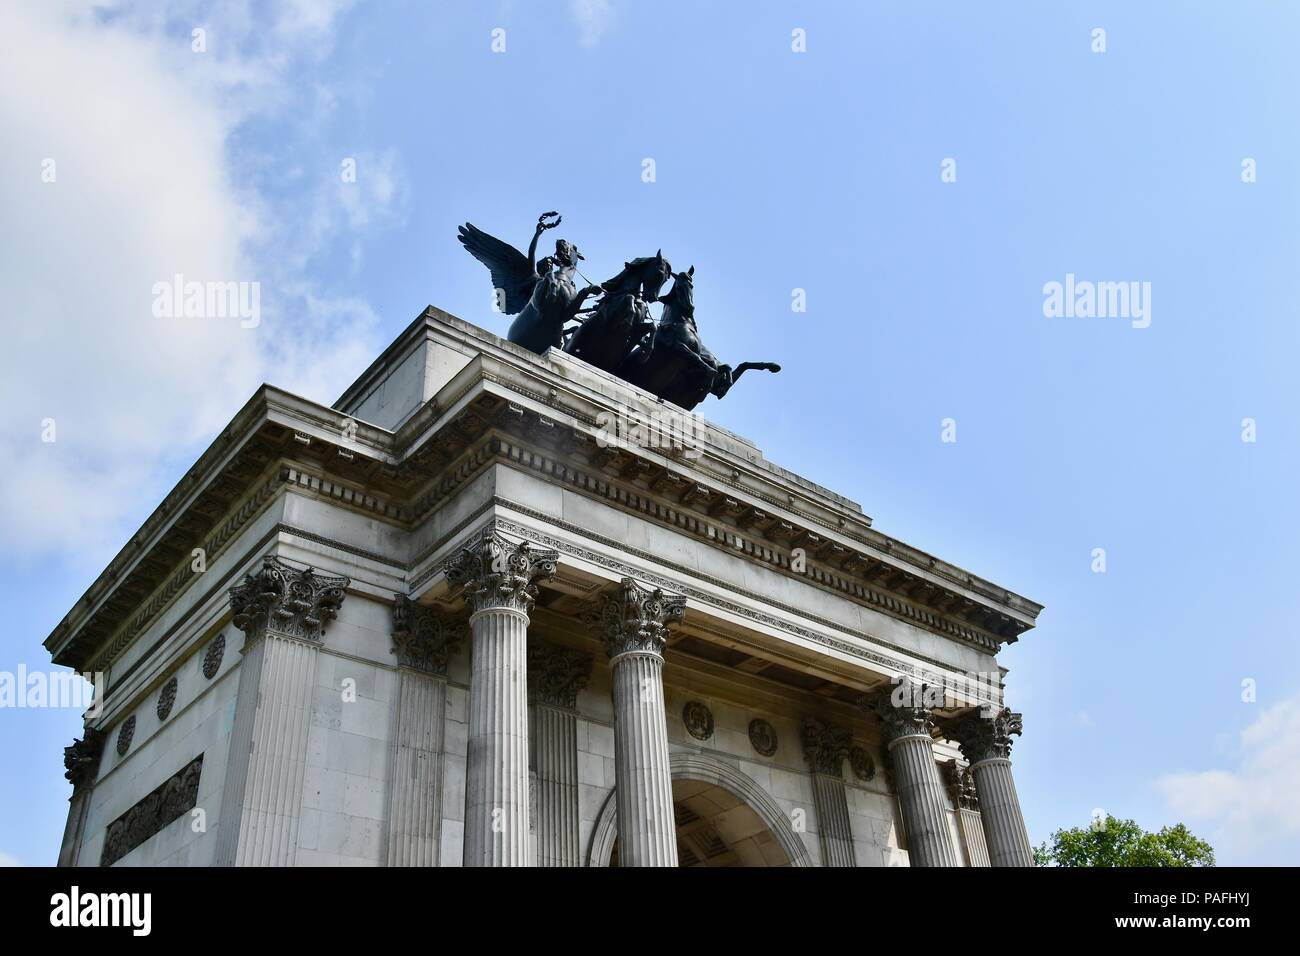 Wellington Arch, Hyde Park Corner, London, U.K. - Stock Image